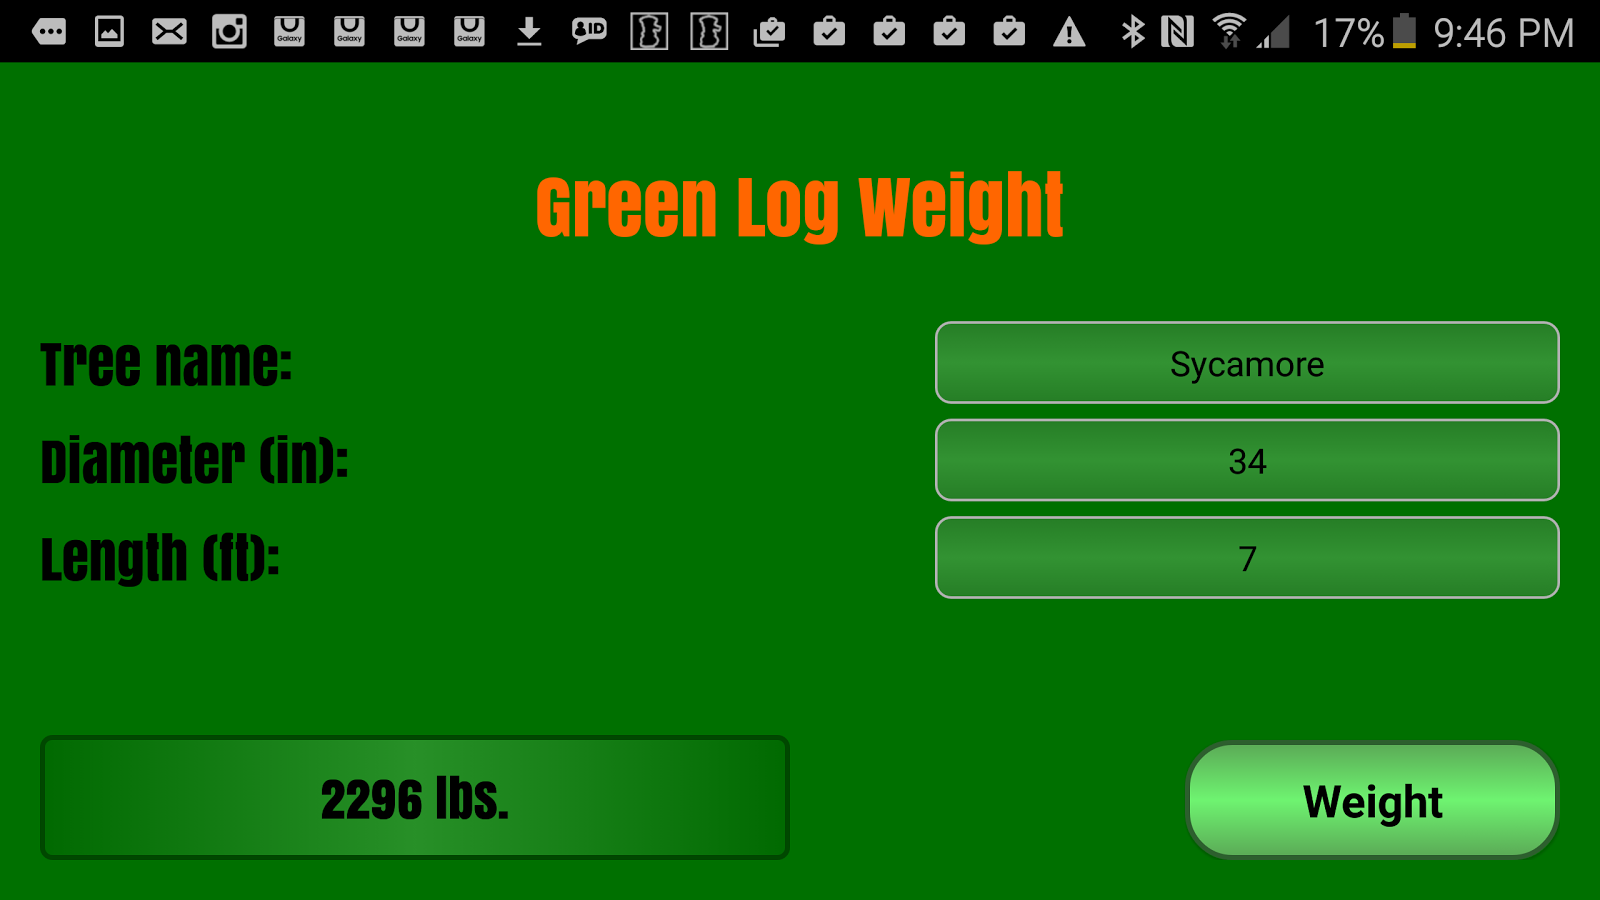 Tree cutters log weight chart android apps on google play tree cutters log weight chart screenshot nvjuhfo Choice Image